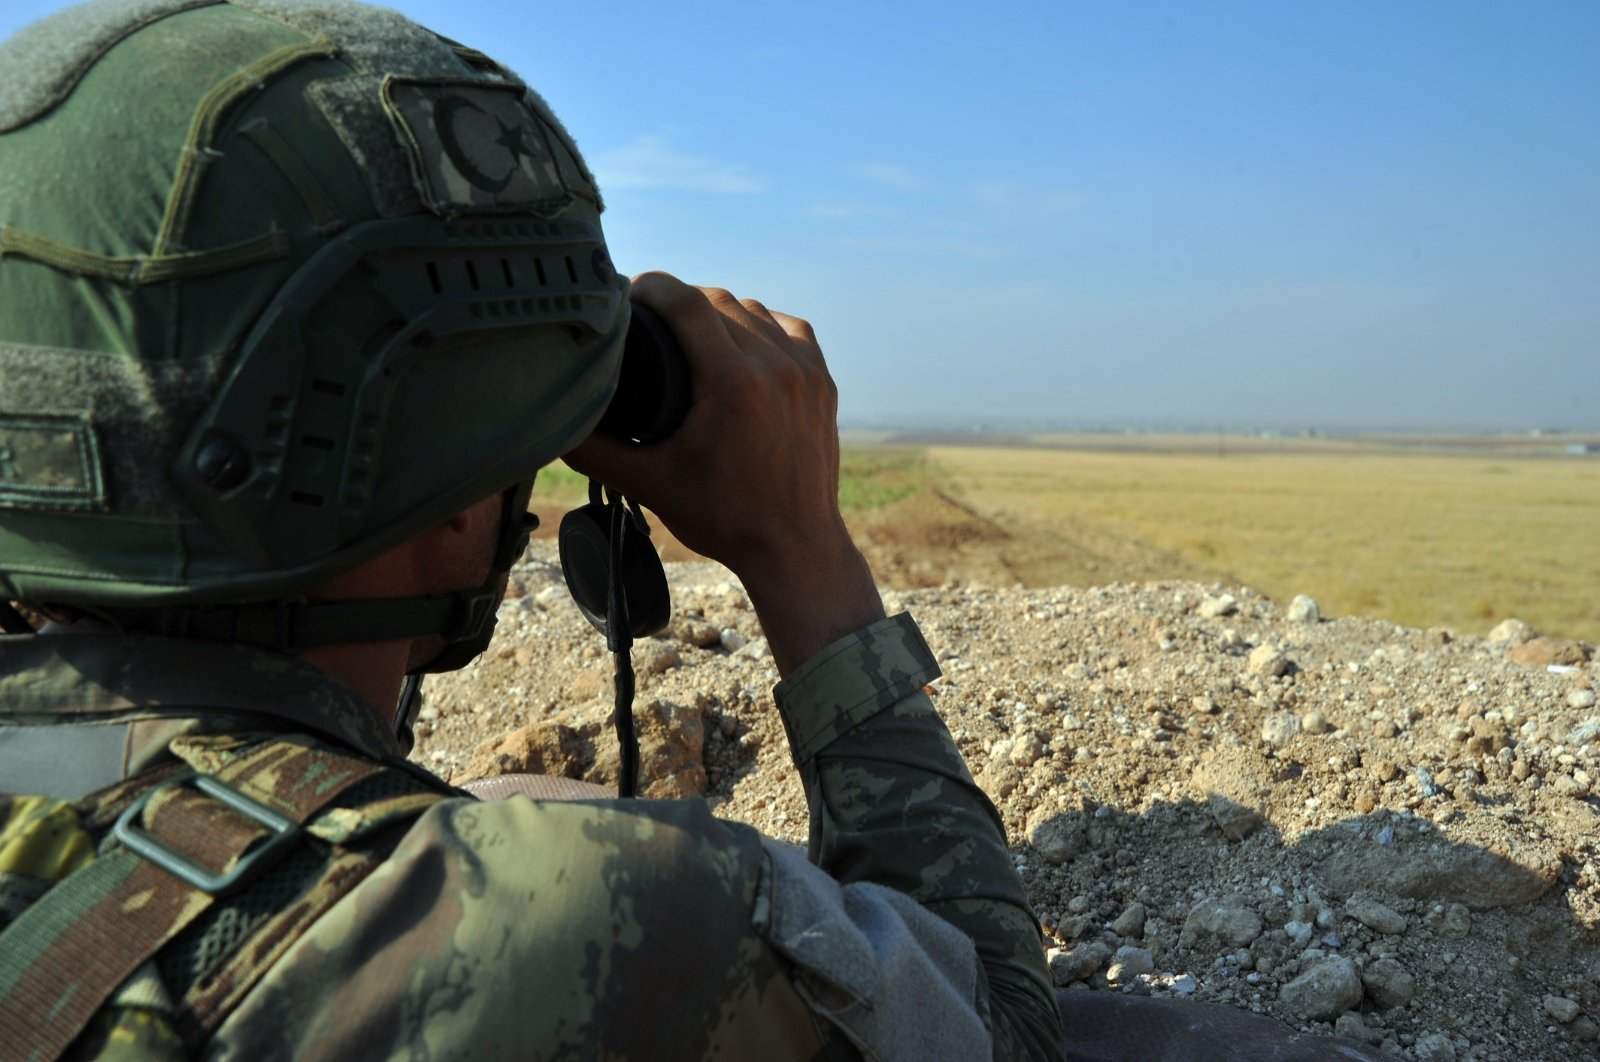 A Turkish soldier is seen in this file photo during an operation against YPG/PKK terrorists, June 13, 2020. (DHA Photo)